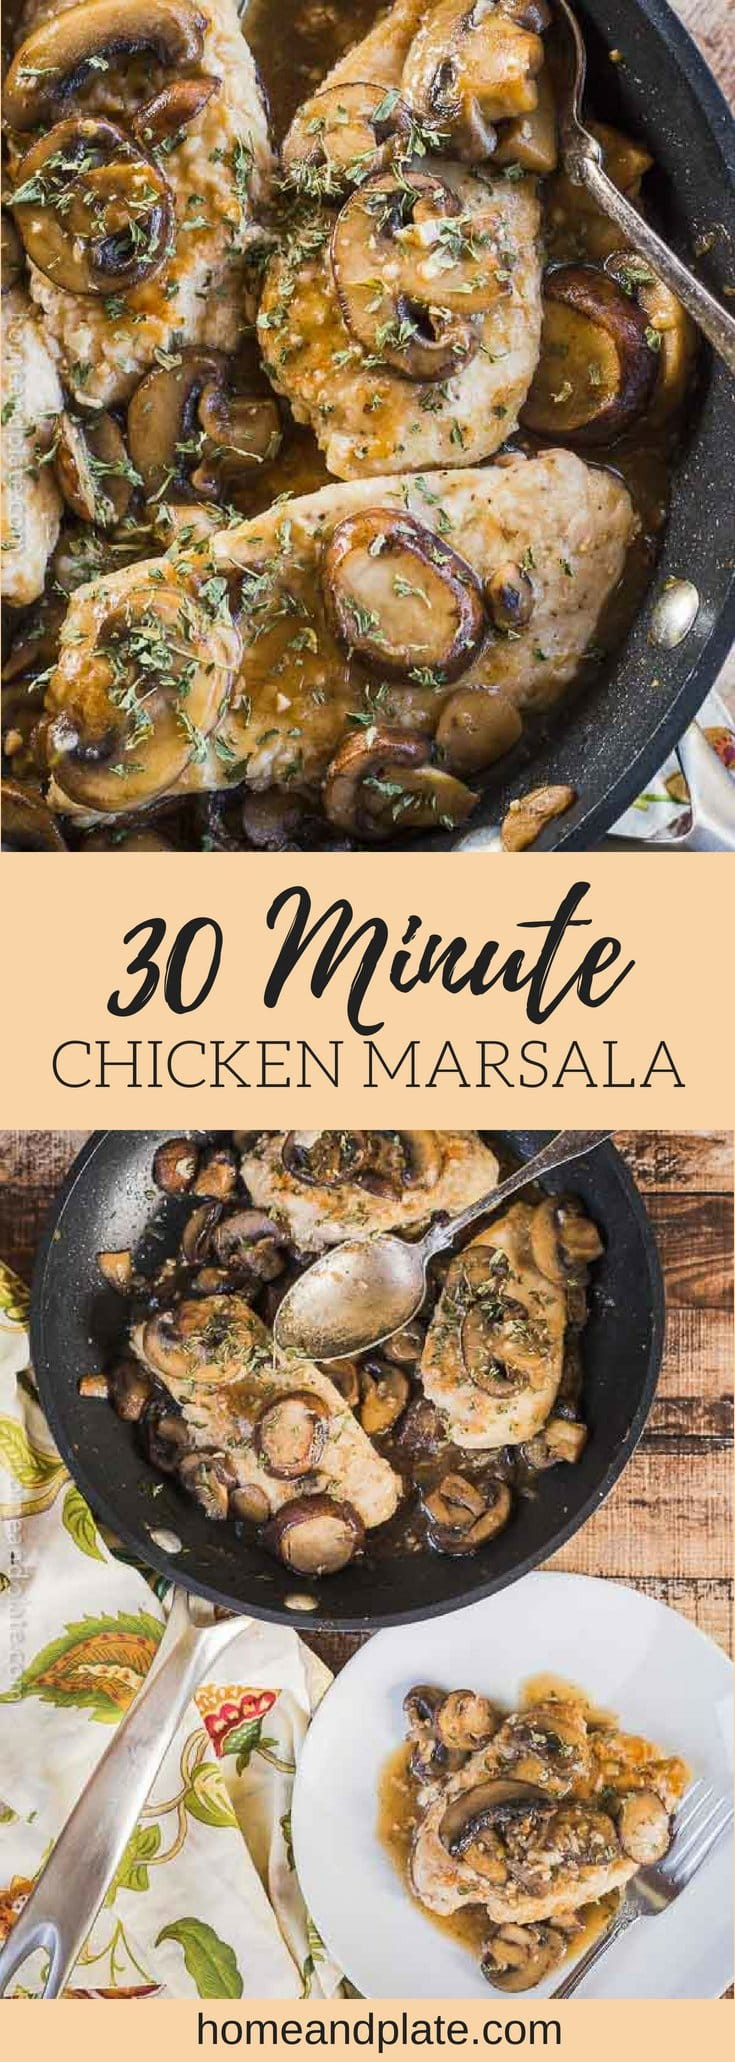 Easy 30 Minute Chicken Marsala   This easy chicken marsala is my go-to dish for a midweek meal and it can be whipped up in under 30 minutes. #chickenmarsala #skilletchicken #chickenwithmushrooms